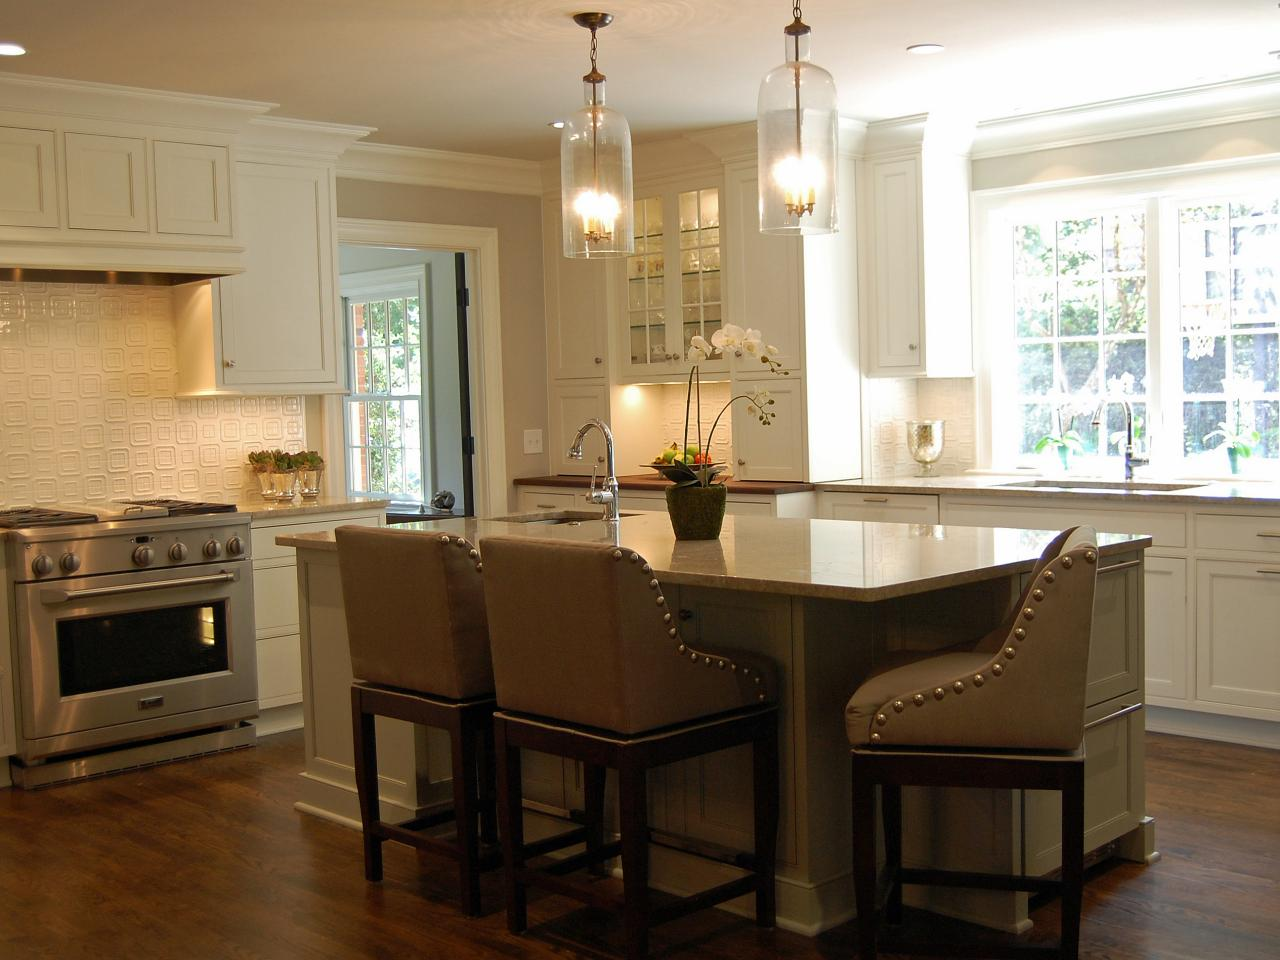 Elegant open kitchen karen kettler hgtv for Hgtv kitchens